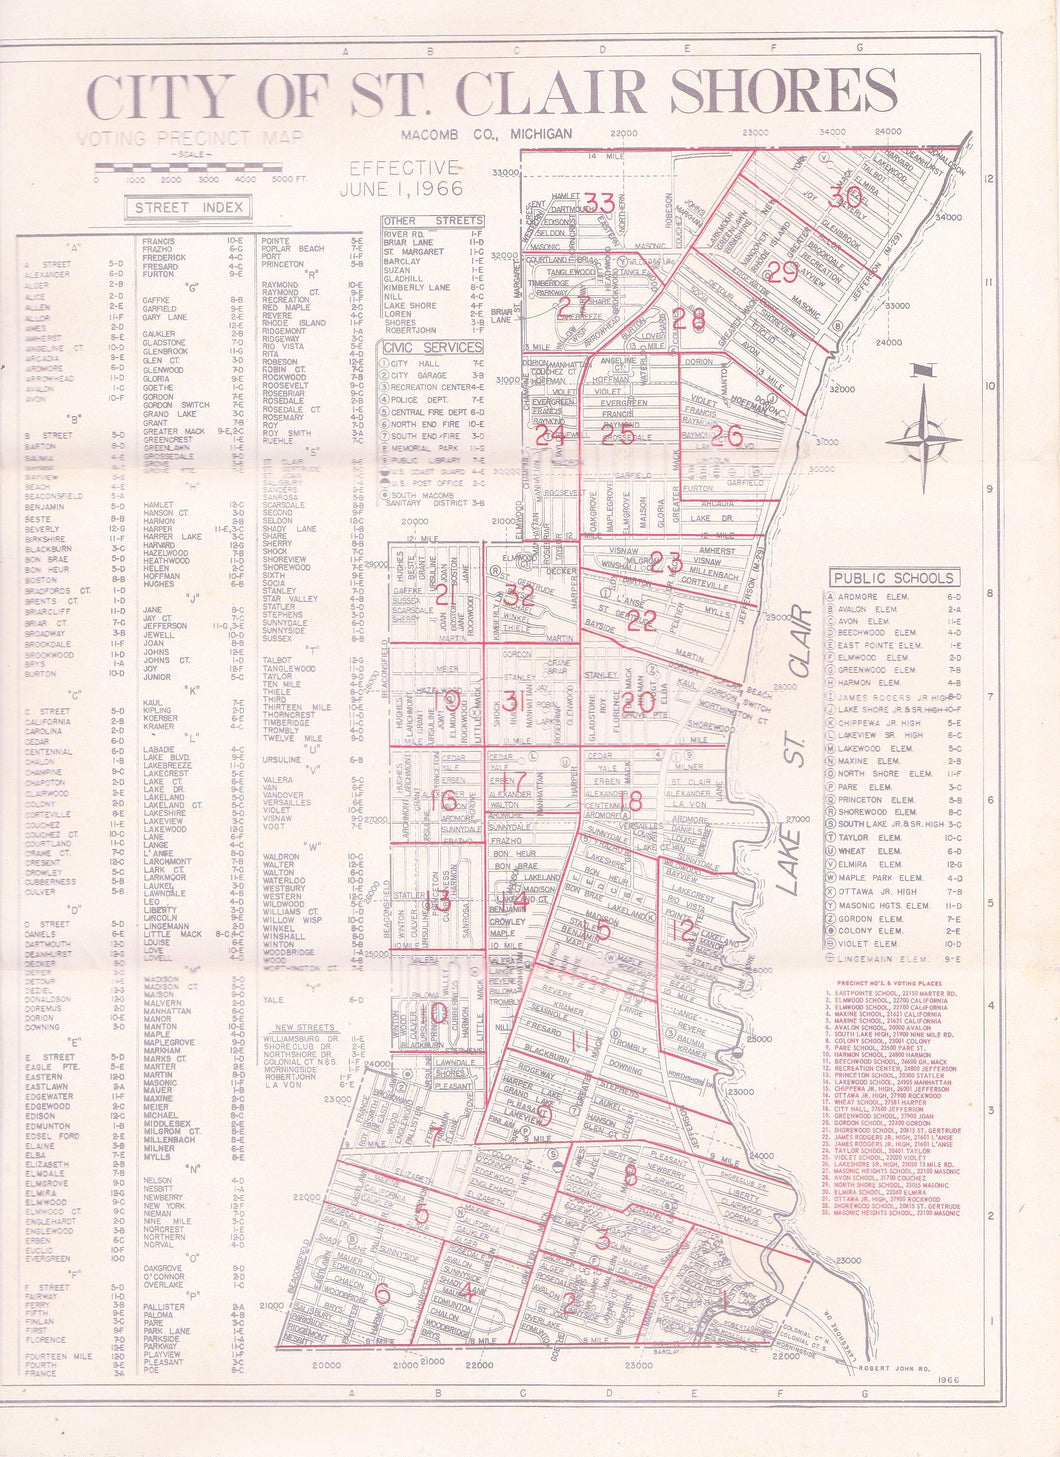 City of St Clair Shores Michigan Vintage June 1966 Voting Precinct Map